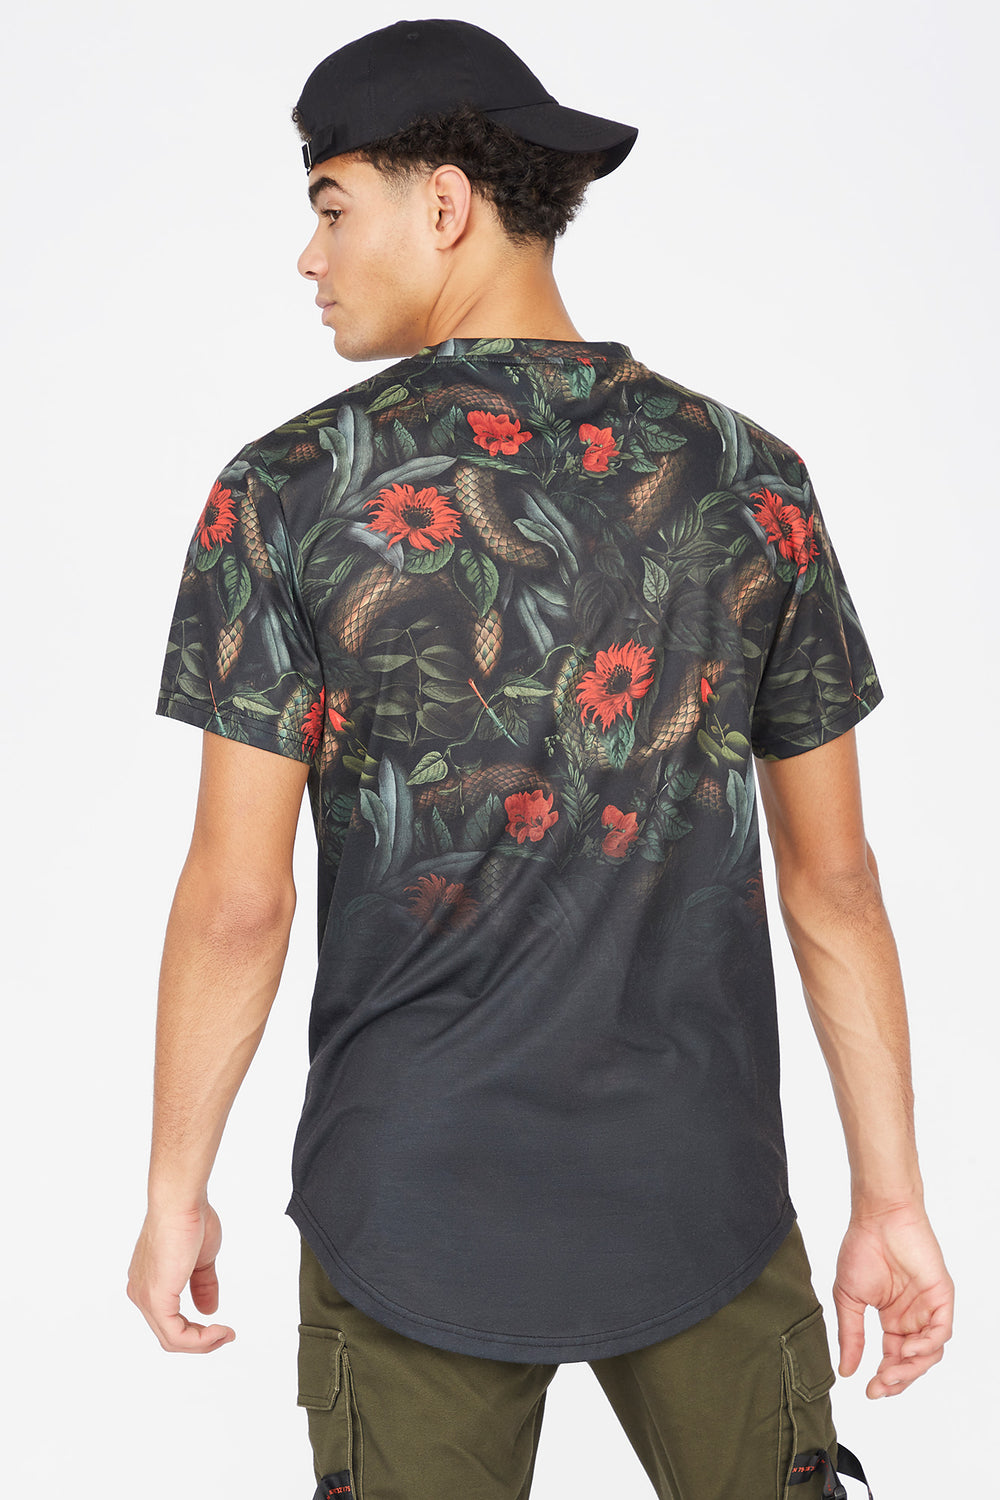 Floral Brooklyn Graphic T-Shirt Black